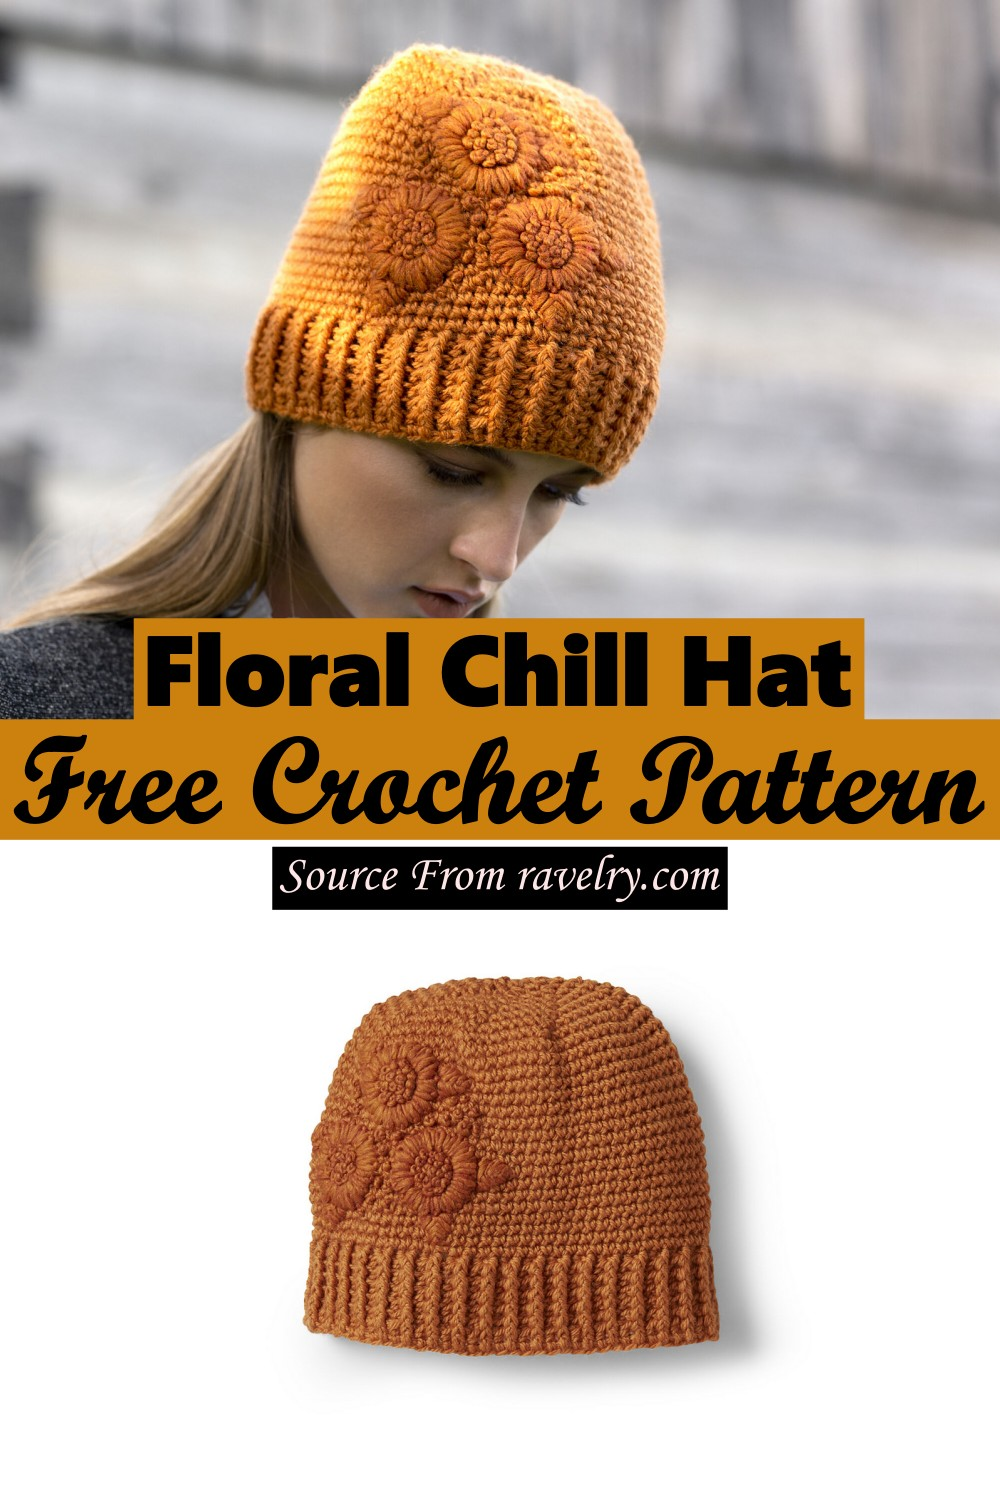 Free Crochet Floral Chill Hat Pattern